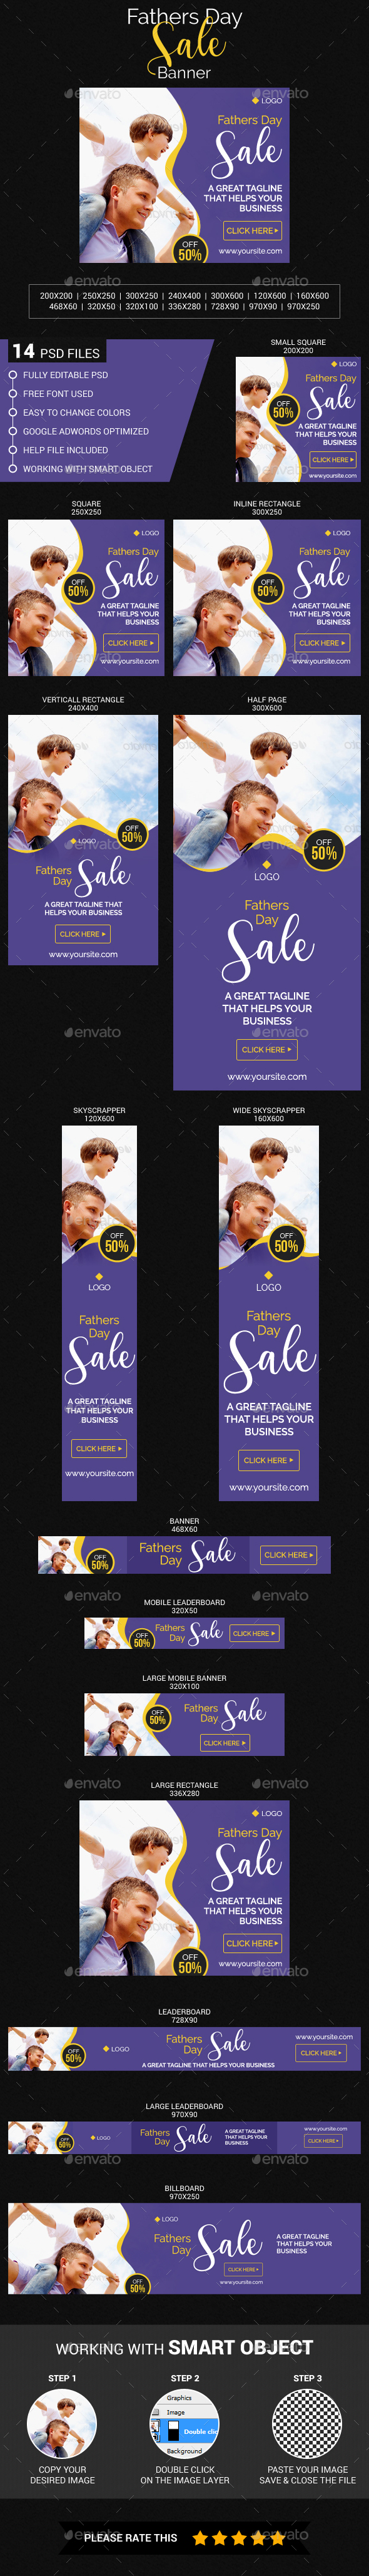 Fathers Day Sale - Banners & Ads Web Elements